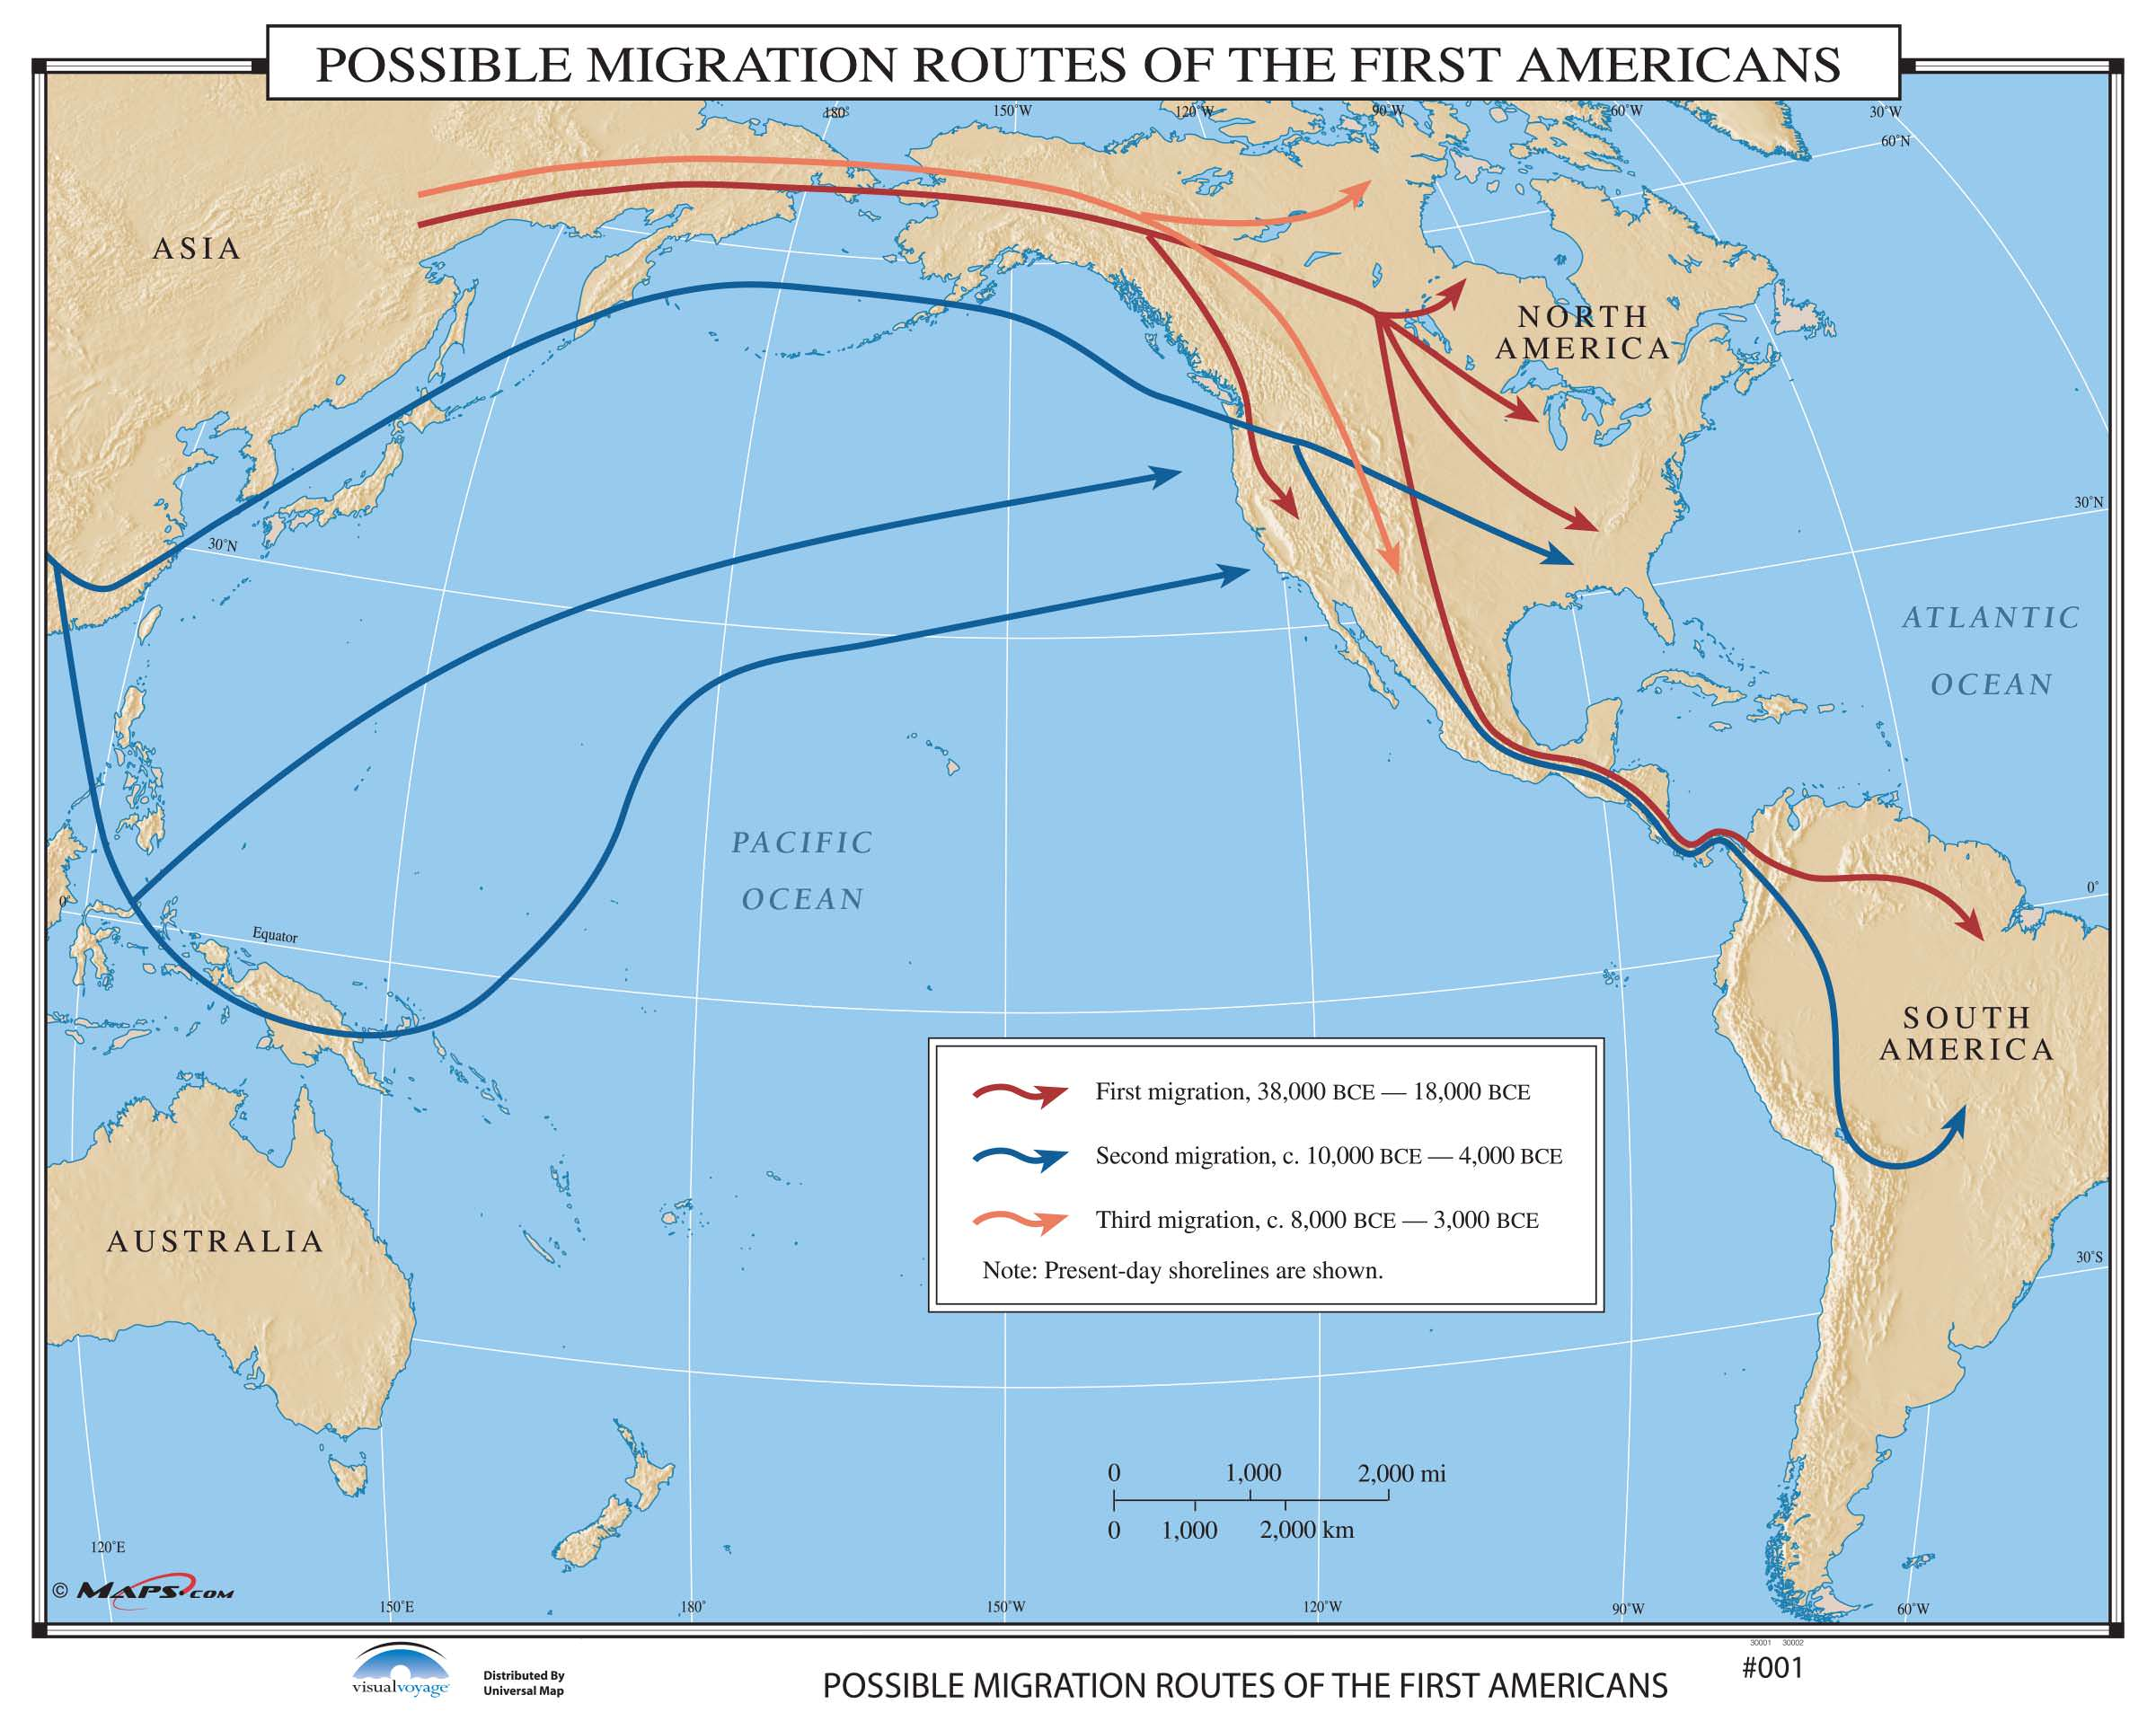 001 possible migration routes of the first americans